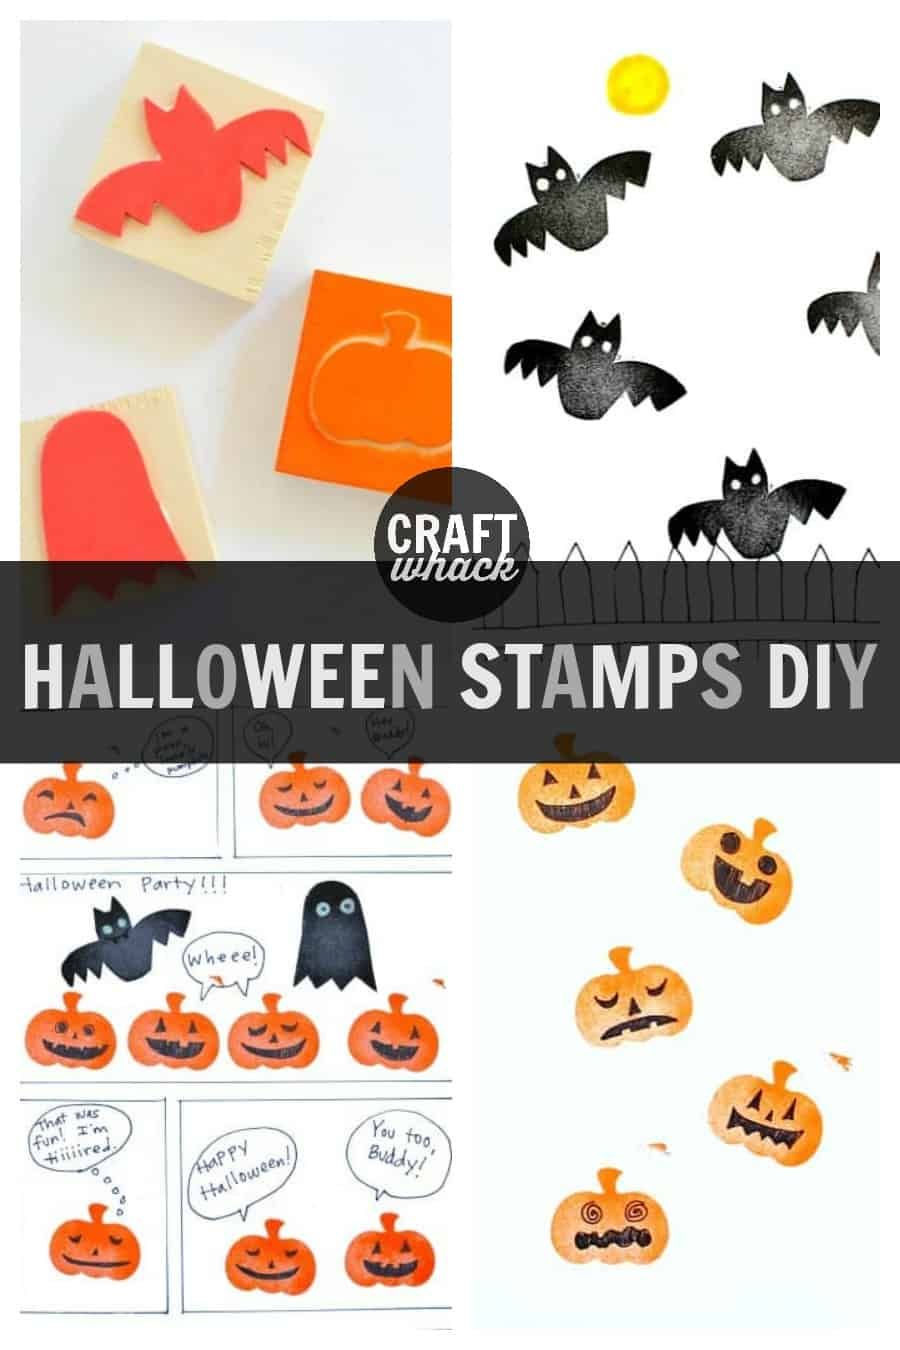 foam stamps of Halloween creatures: bats, ghosts and jack-o-lanterns as a kids craft